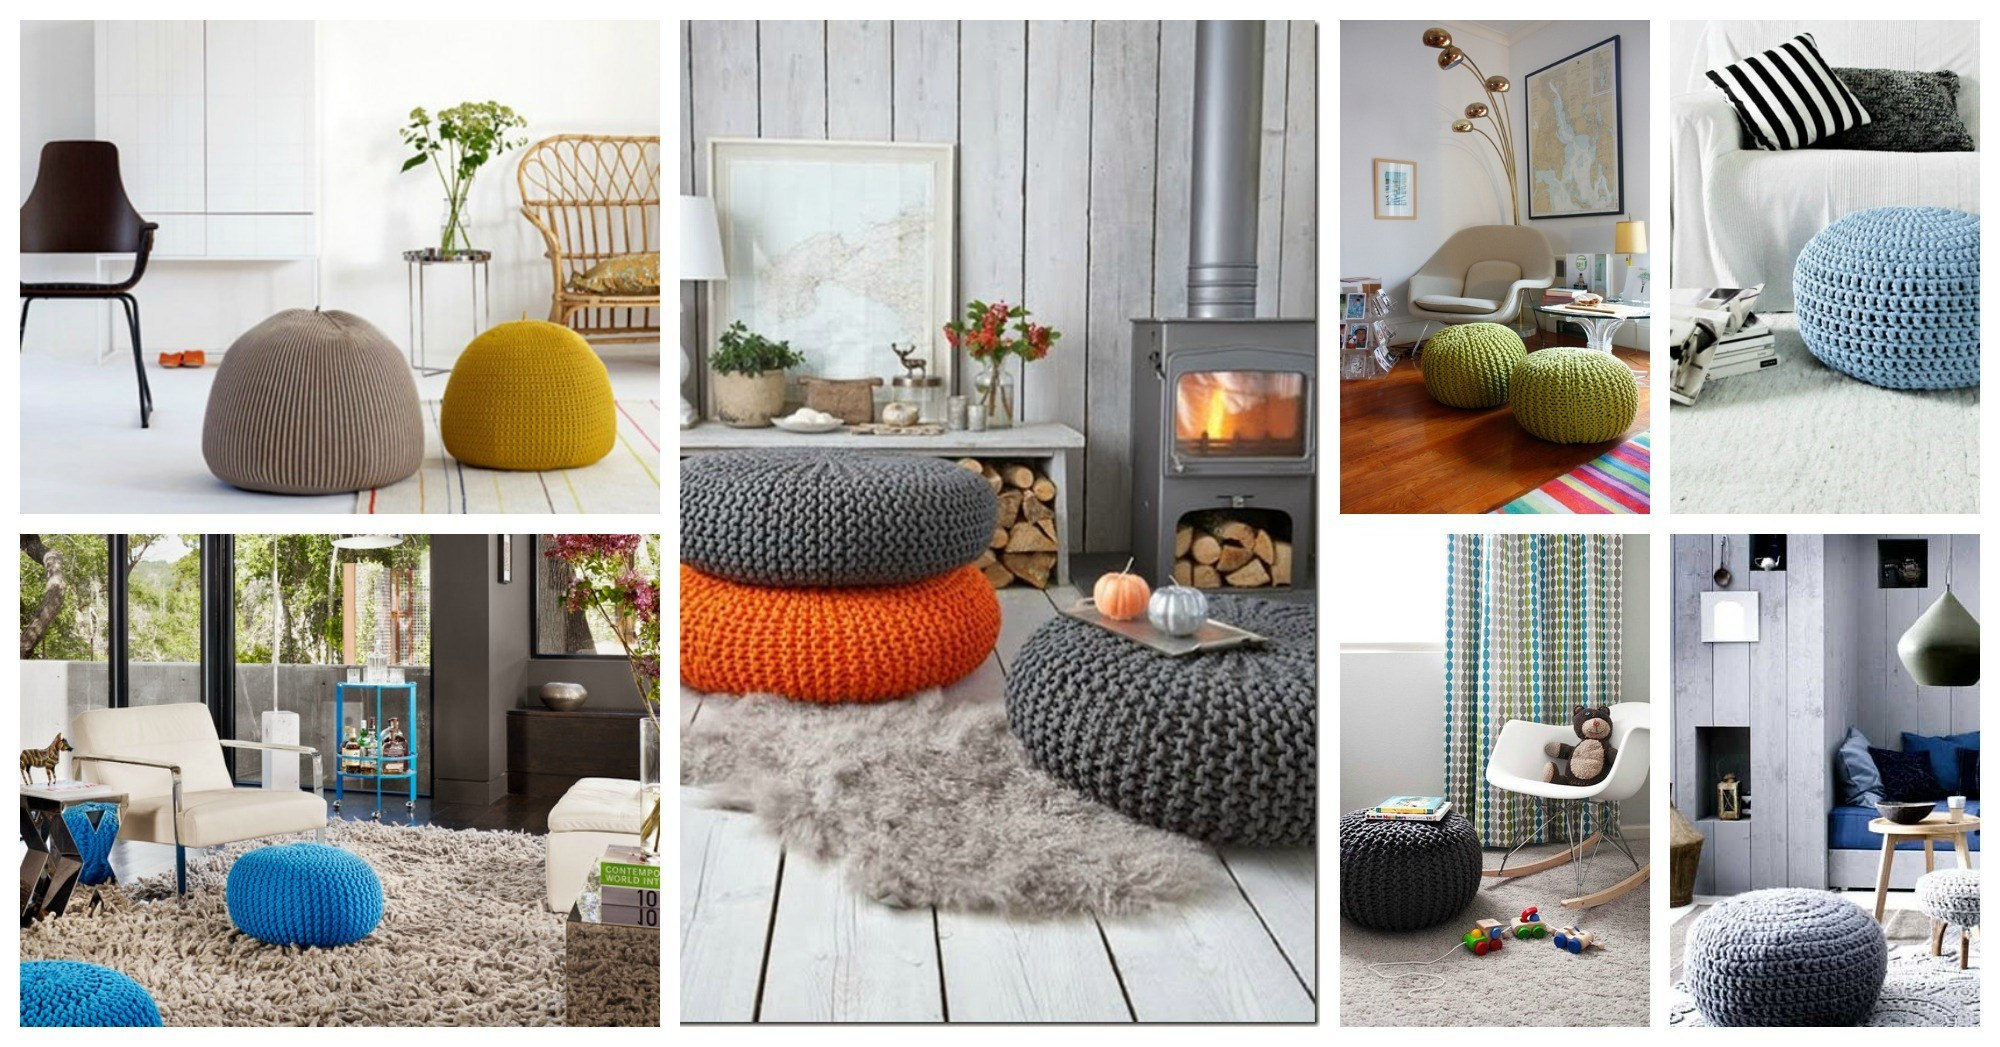 Cool Ways To Incorporate The Knitted Poufs In Your Home